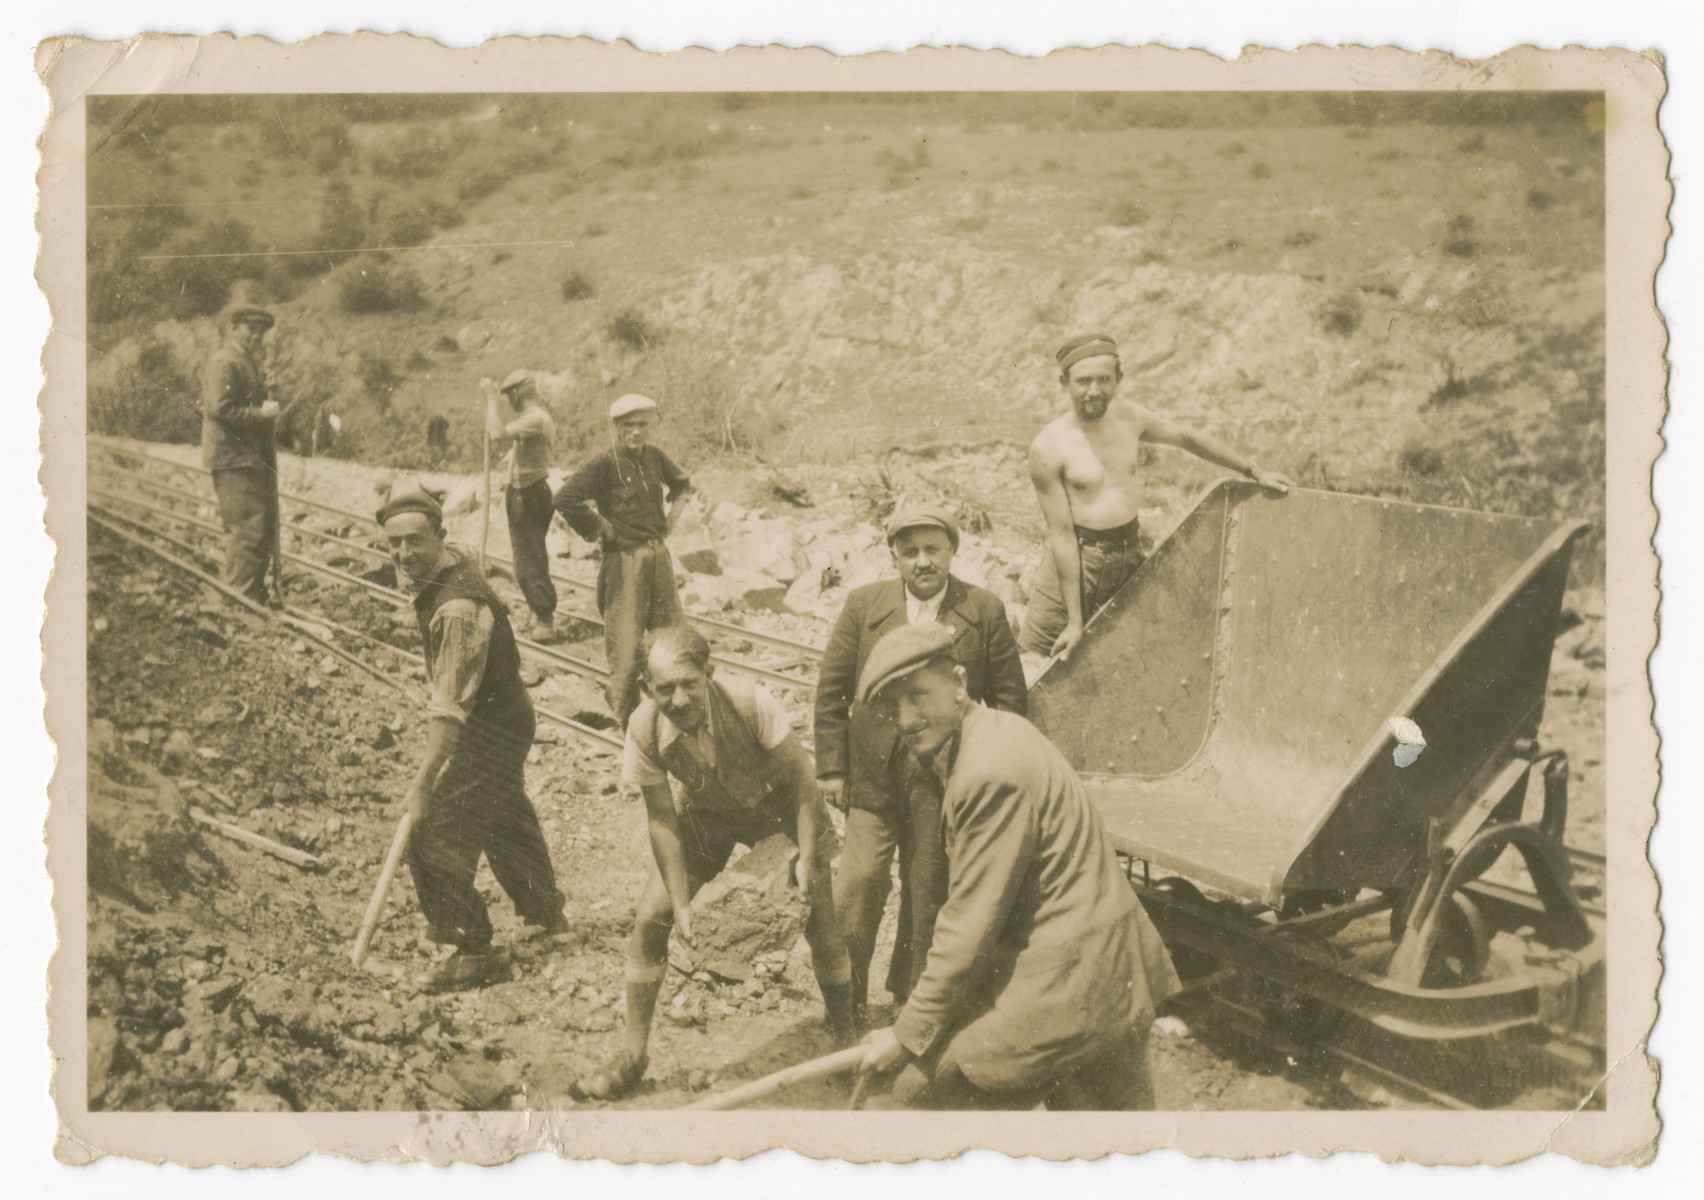 Internees work at a construction site in a Bulgarian labor camp.